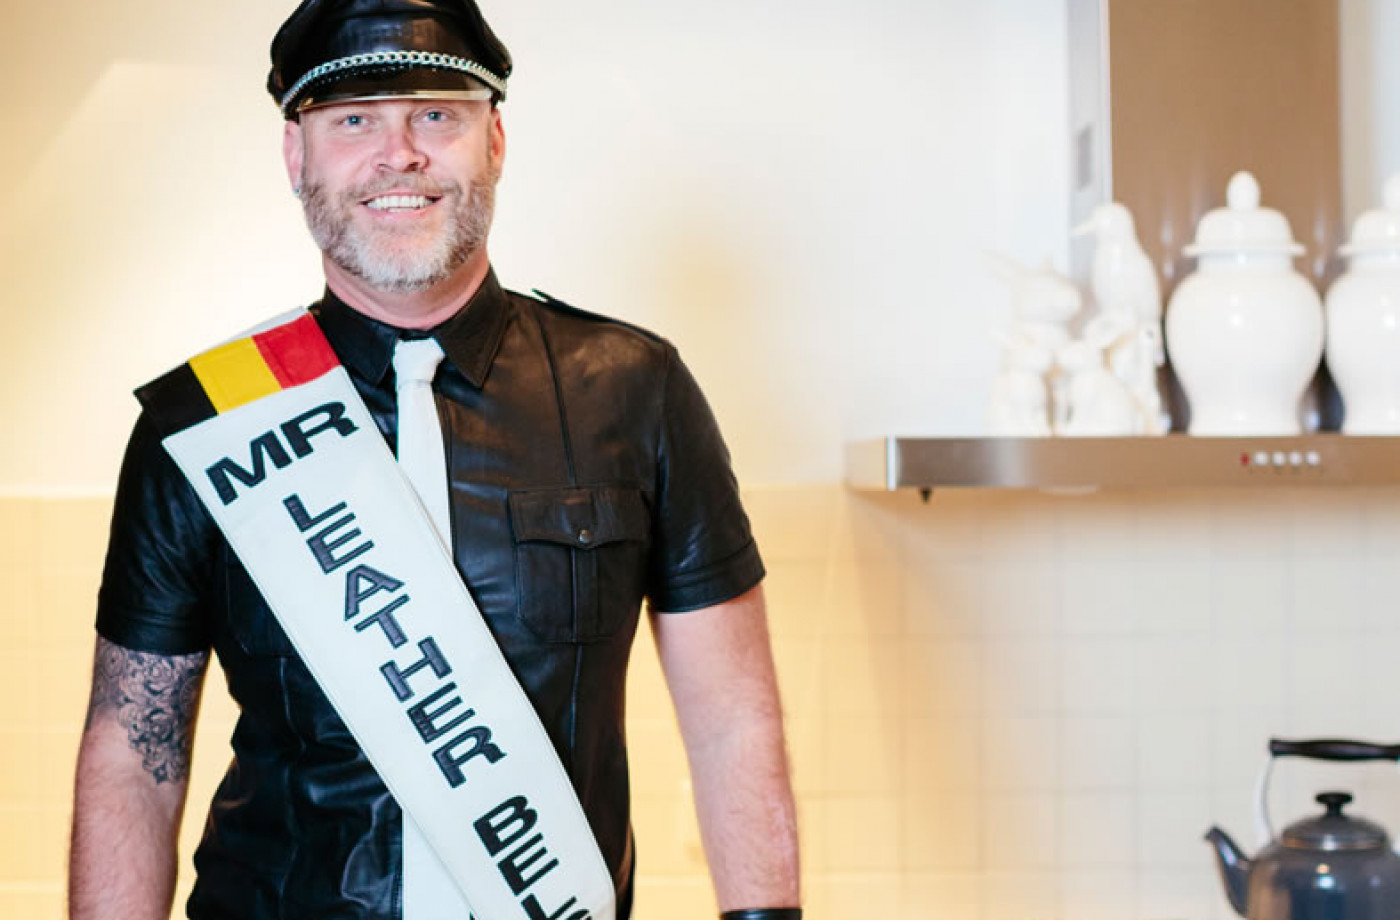 Georges Peeters is Mister Leather